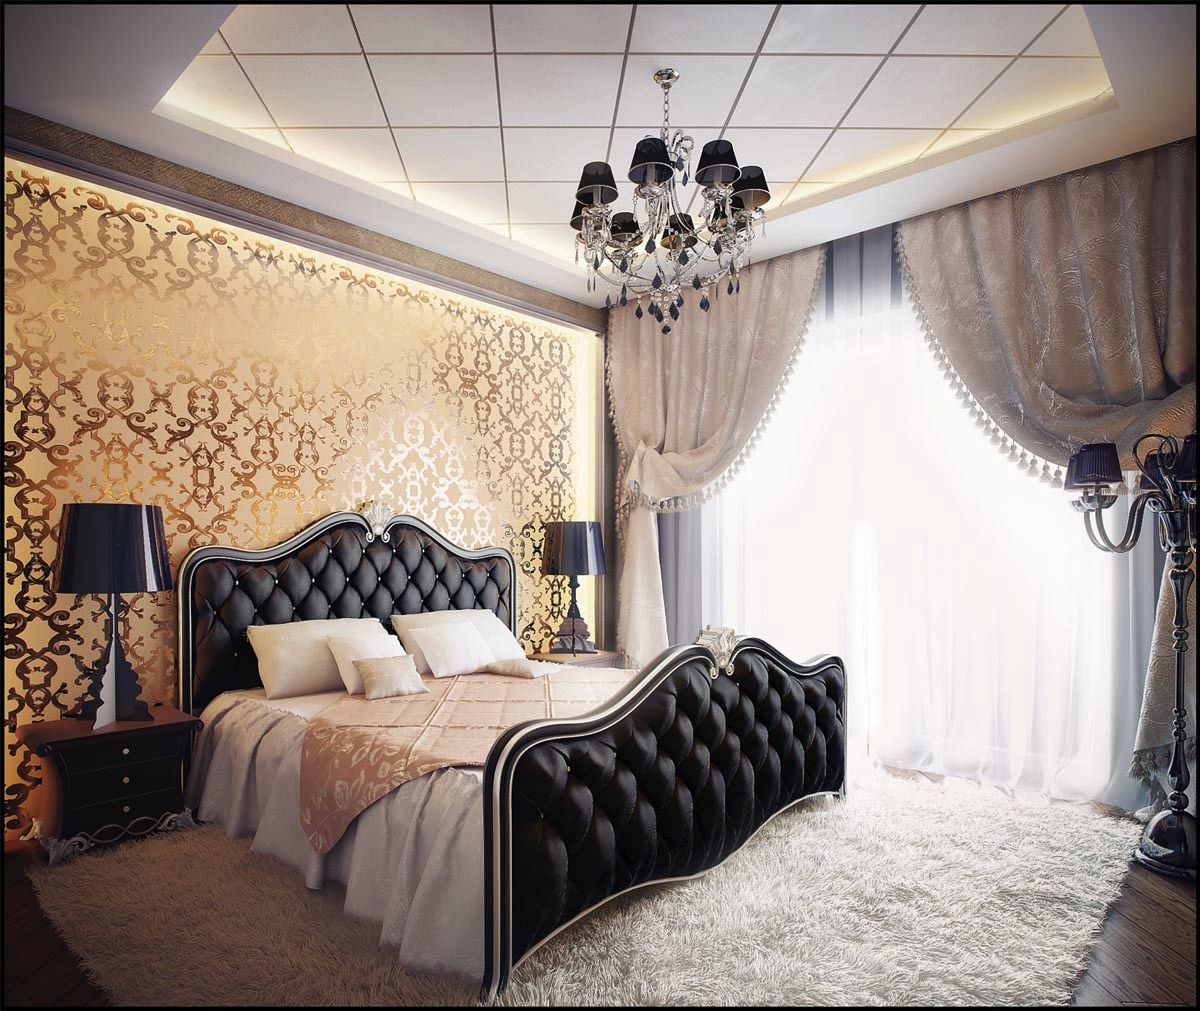 combination-black-gold-color-bedroom-interior-design.jpg